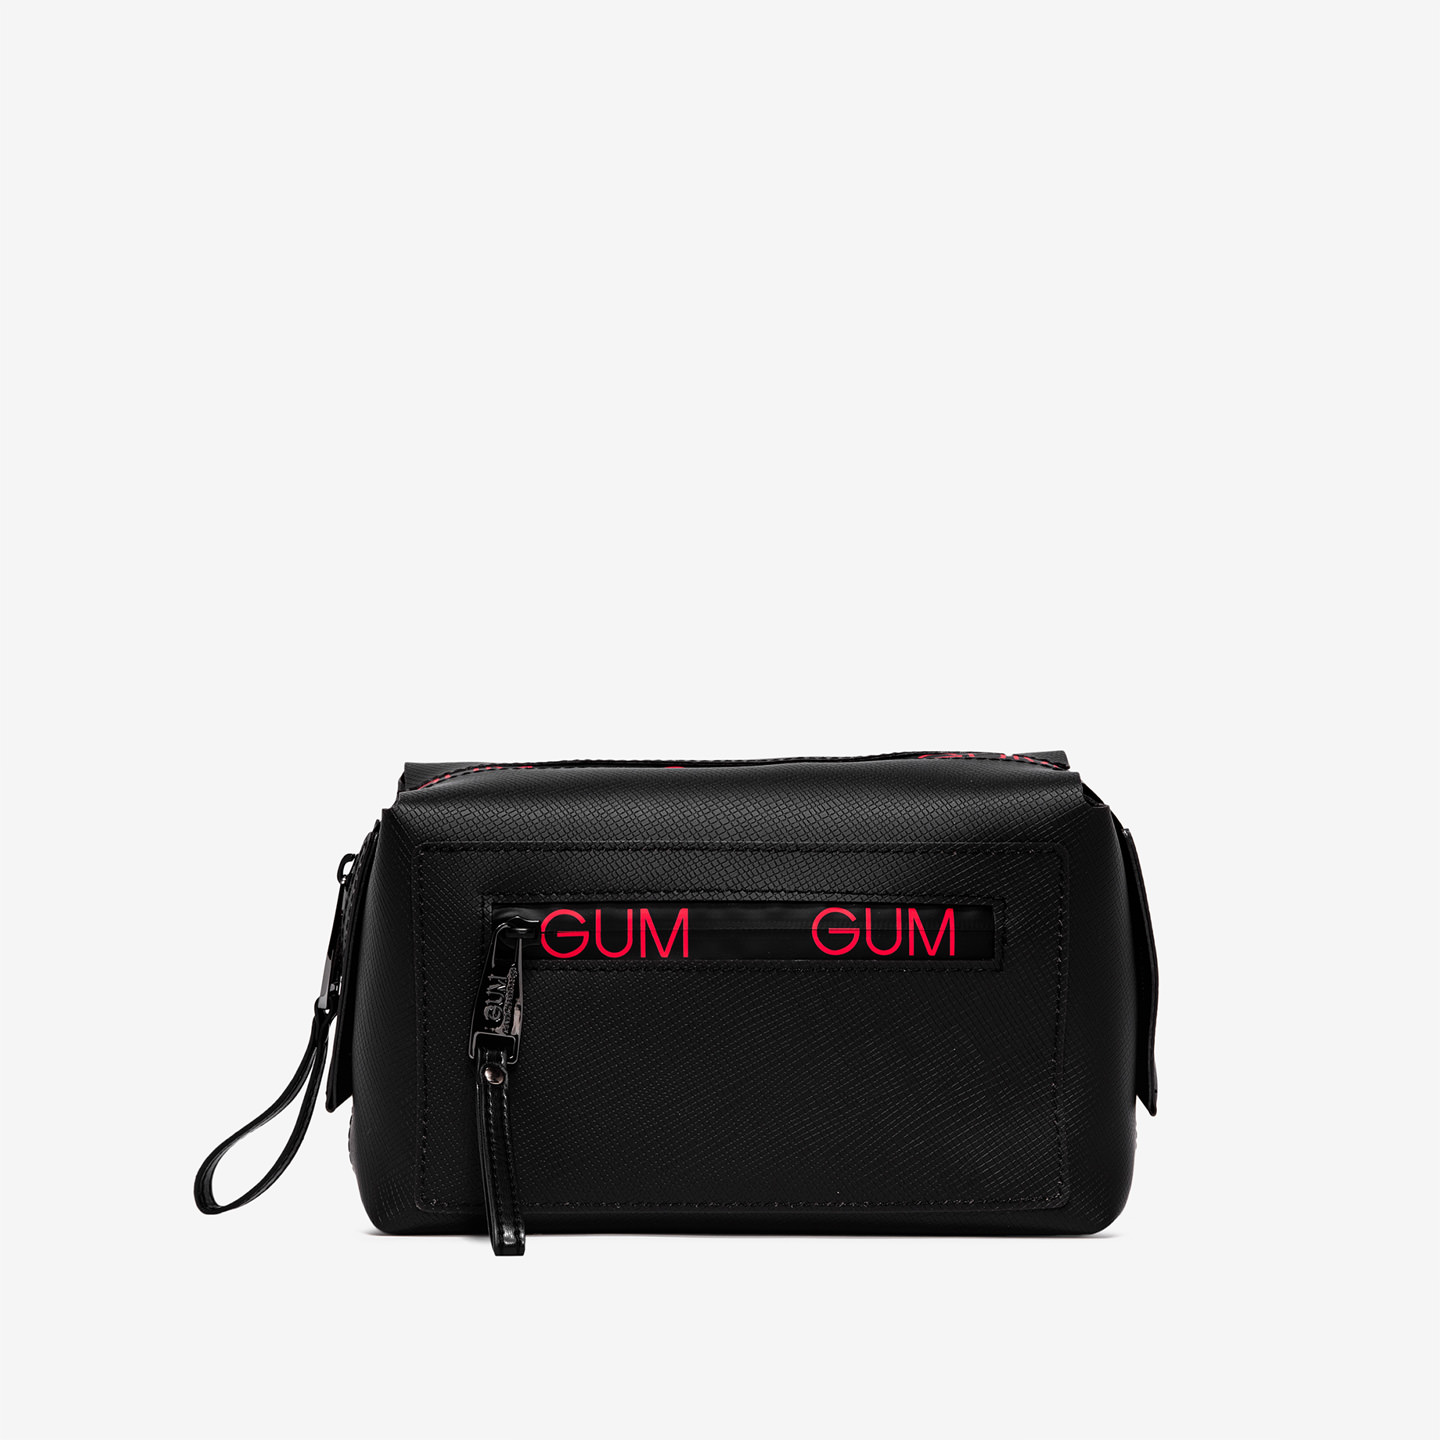 GUM: BEAUTY CASE FANTASIA ZIP LOGO